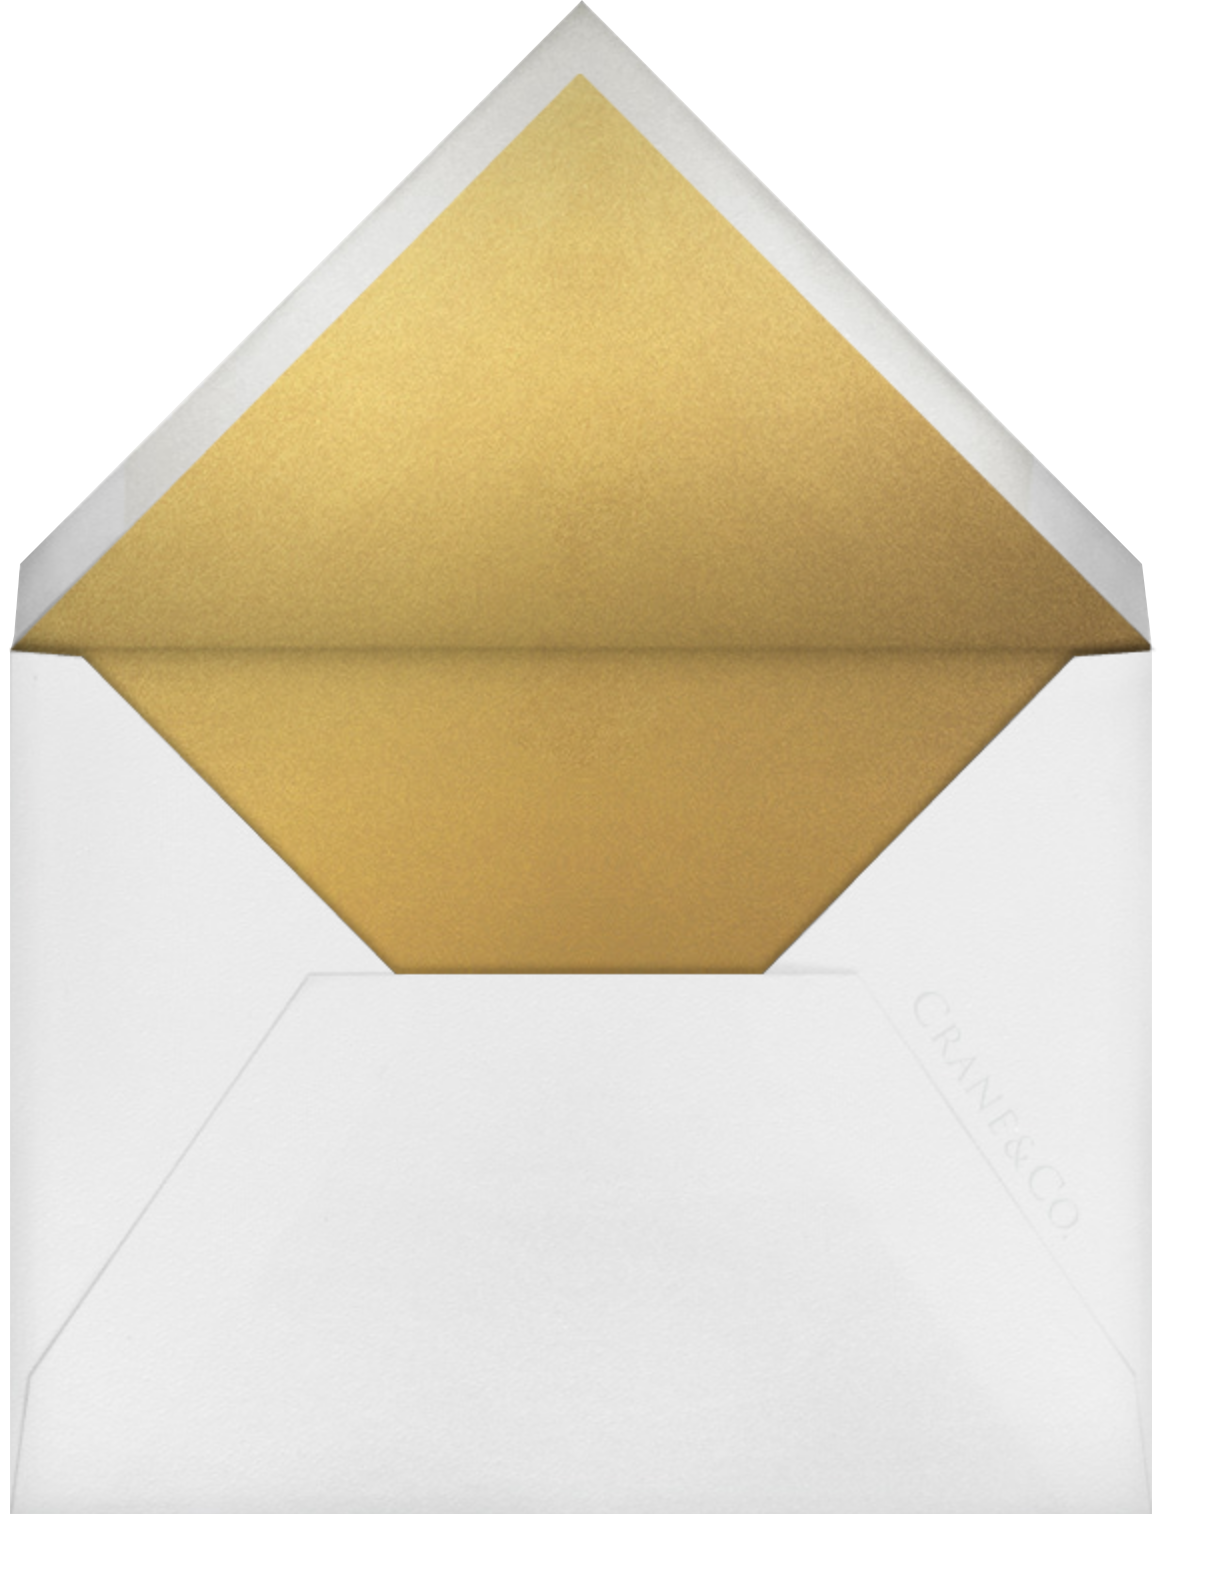 Matte (Stationery) - Gold - Vera Wang - Personalized stationery - envelope back